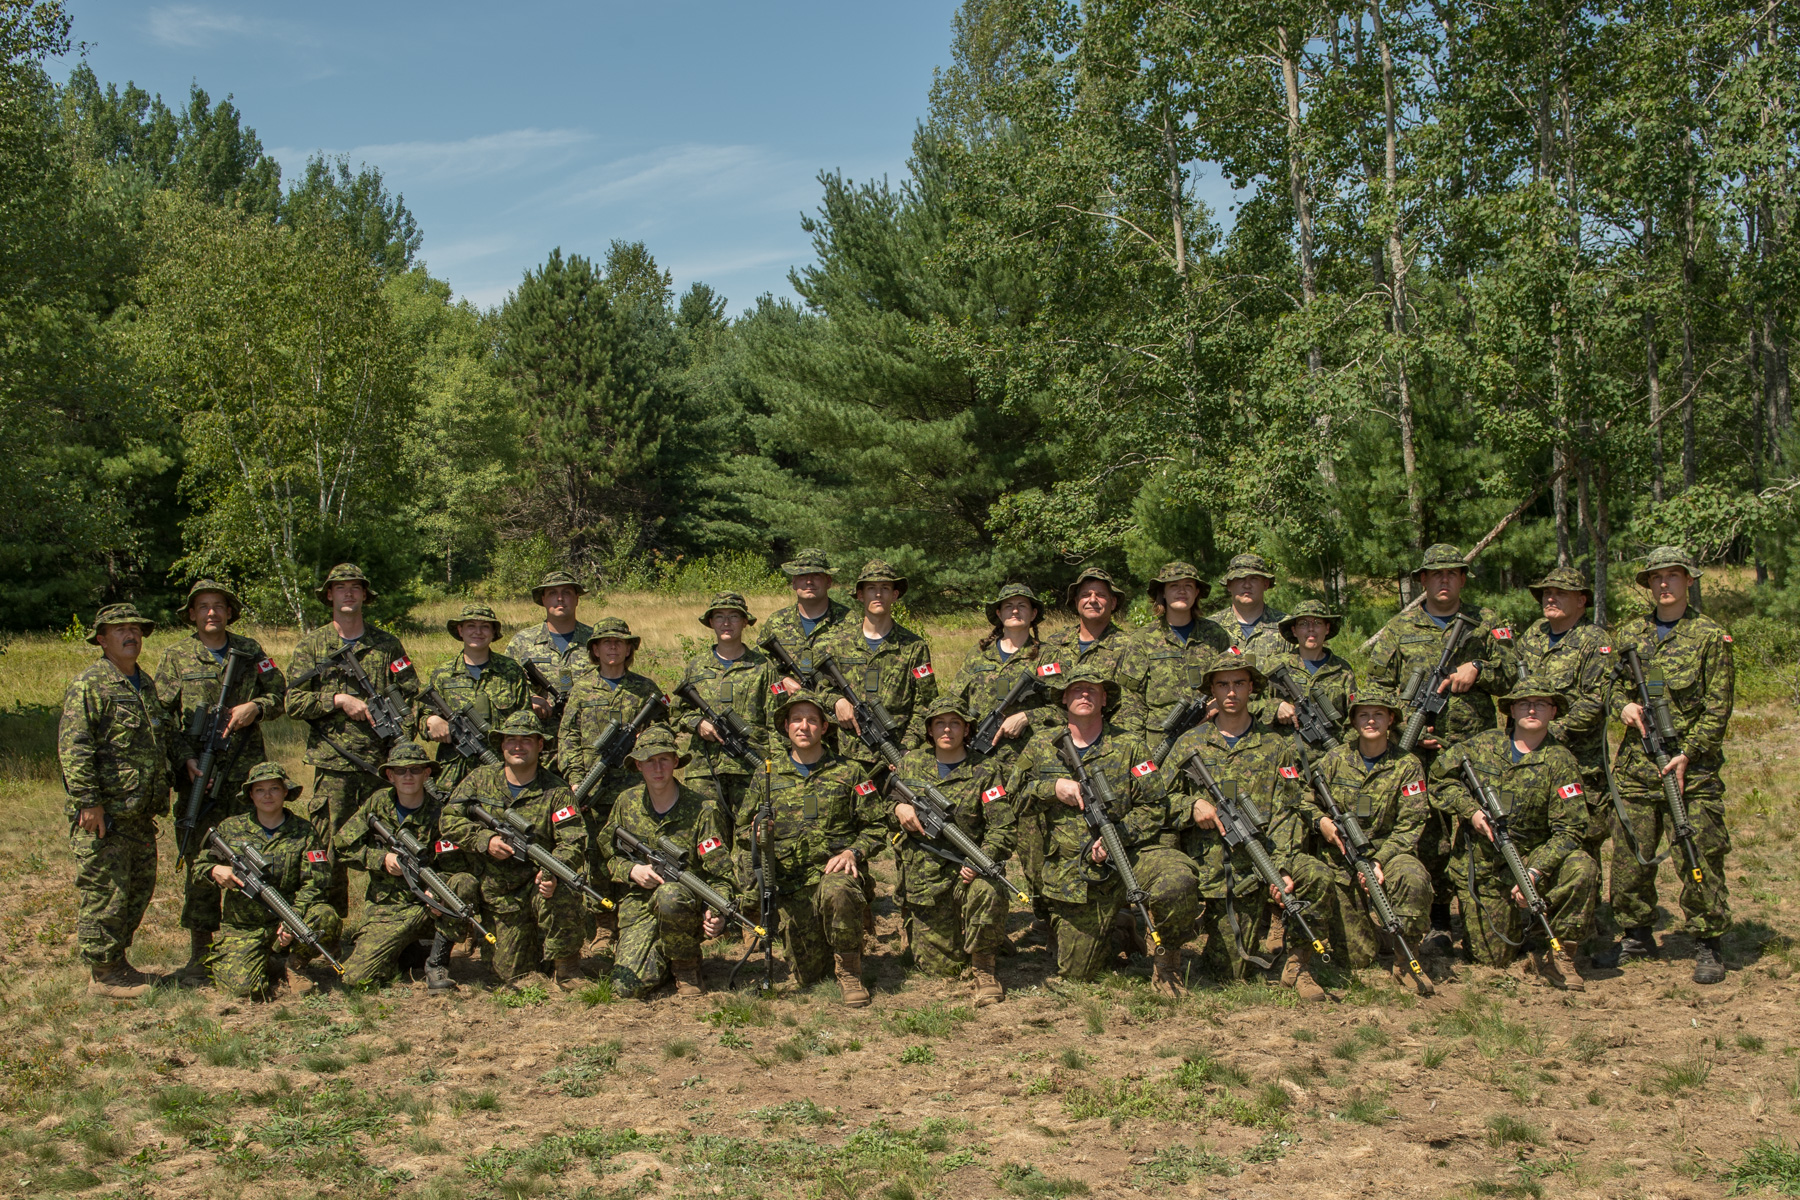 A group photo during the Royal Canadian Air Force Reserve Basic Military Qualification Course 0283.